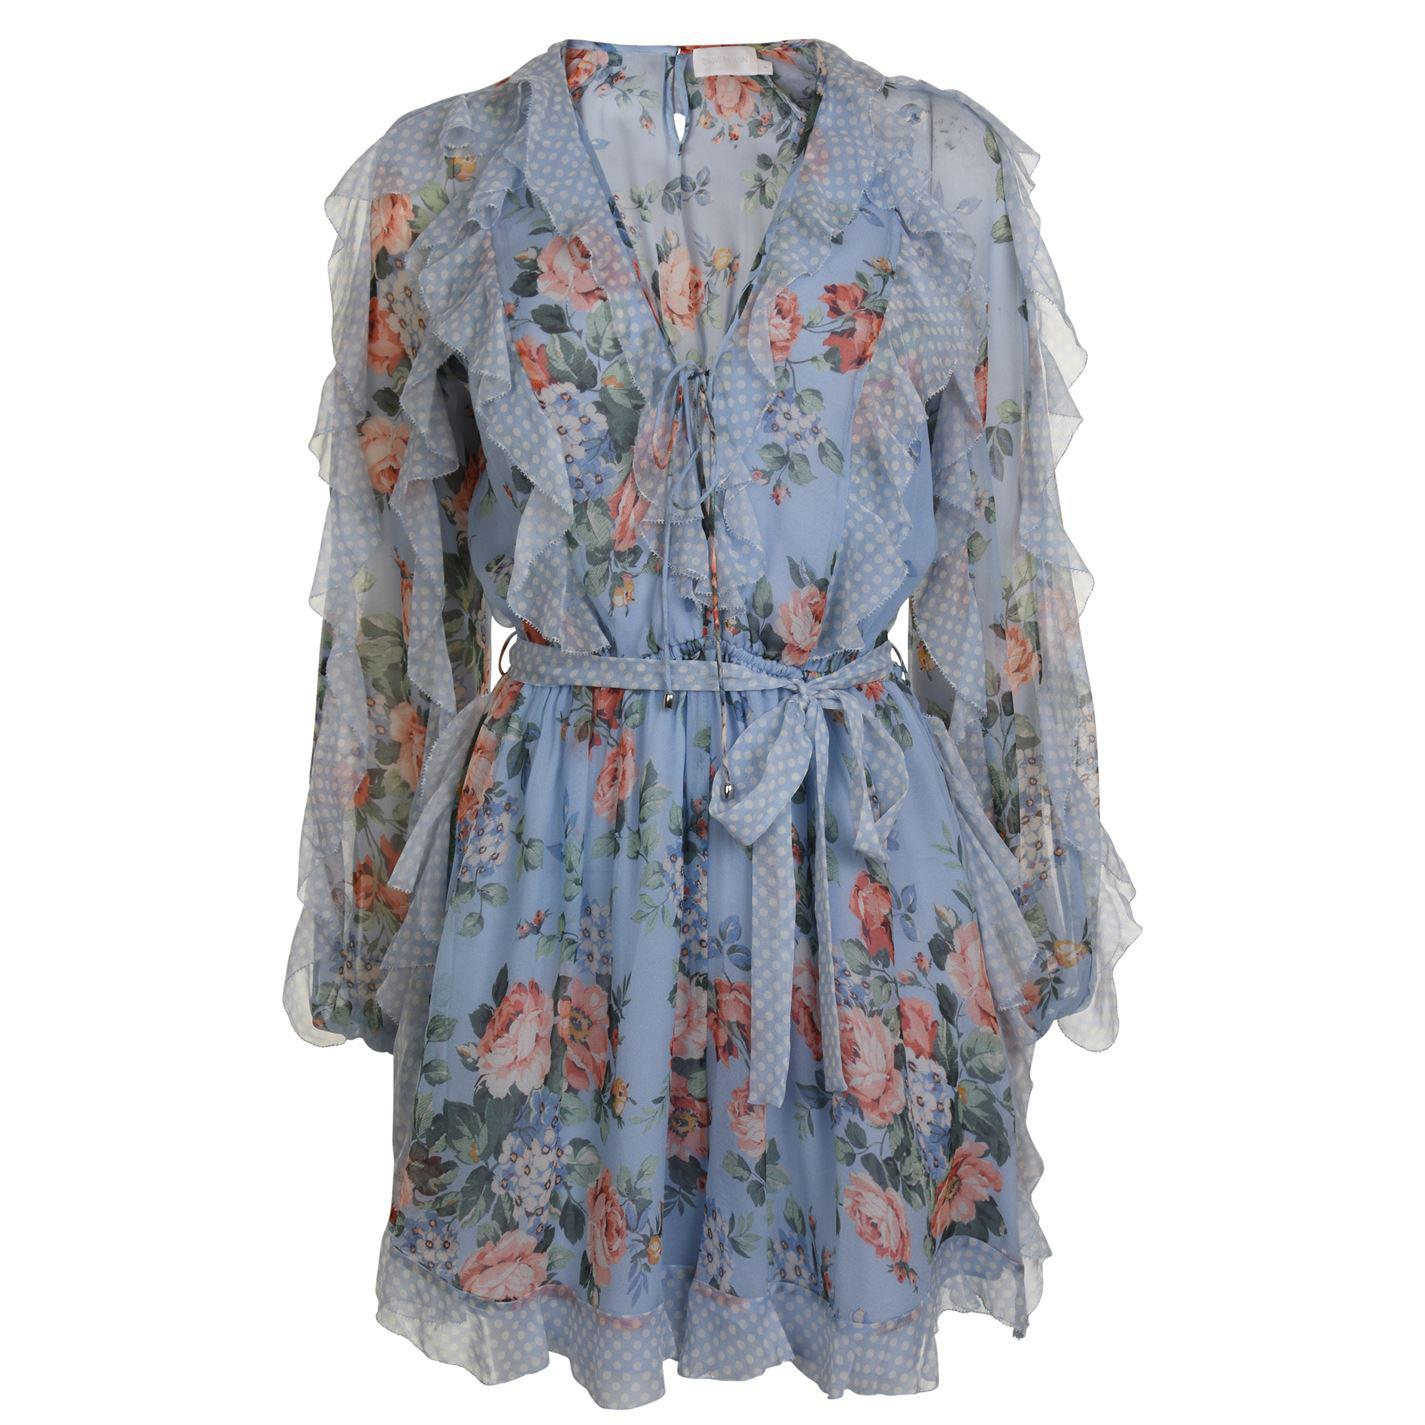 e994d39338b Lyst - Zimmermann Bowie Floral Playsuit in Blue